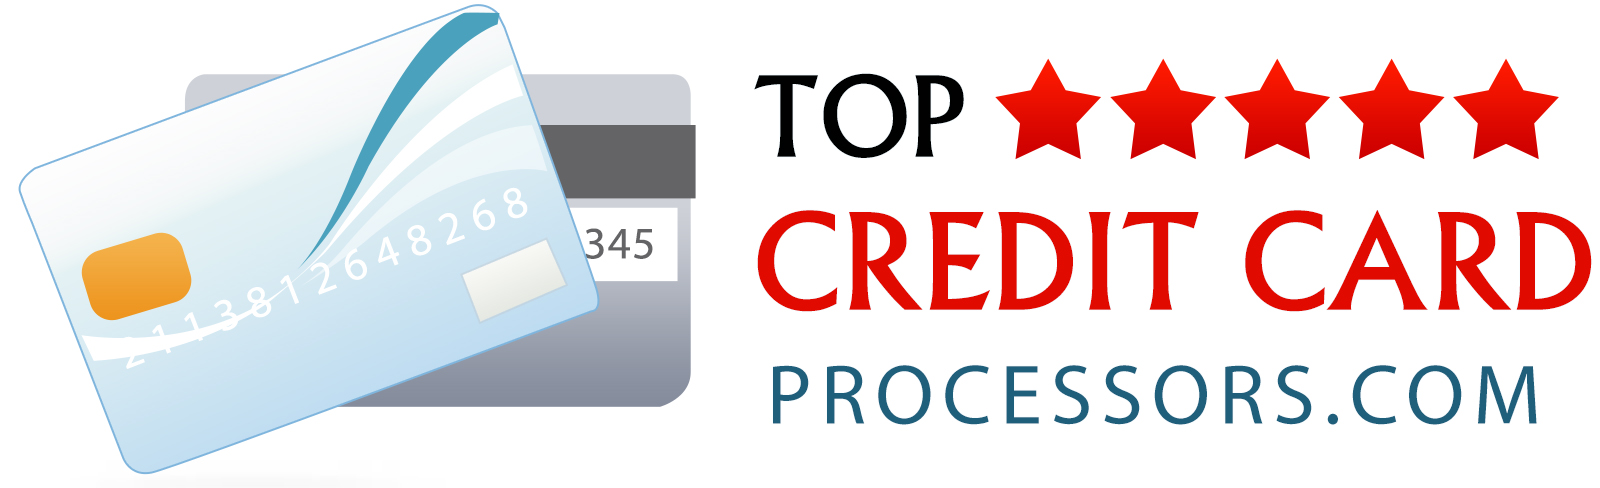 Merchants Bancard Network Named Best Cash Discount Company by topcreditcardprocessors.com for August 2021